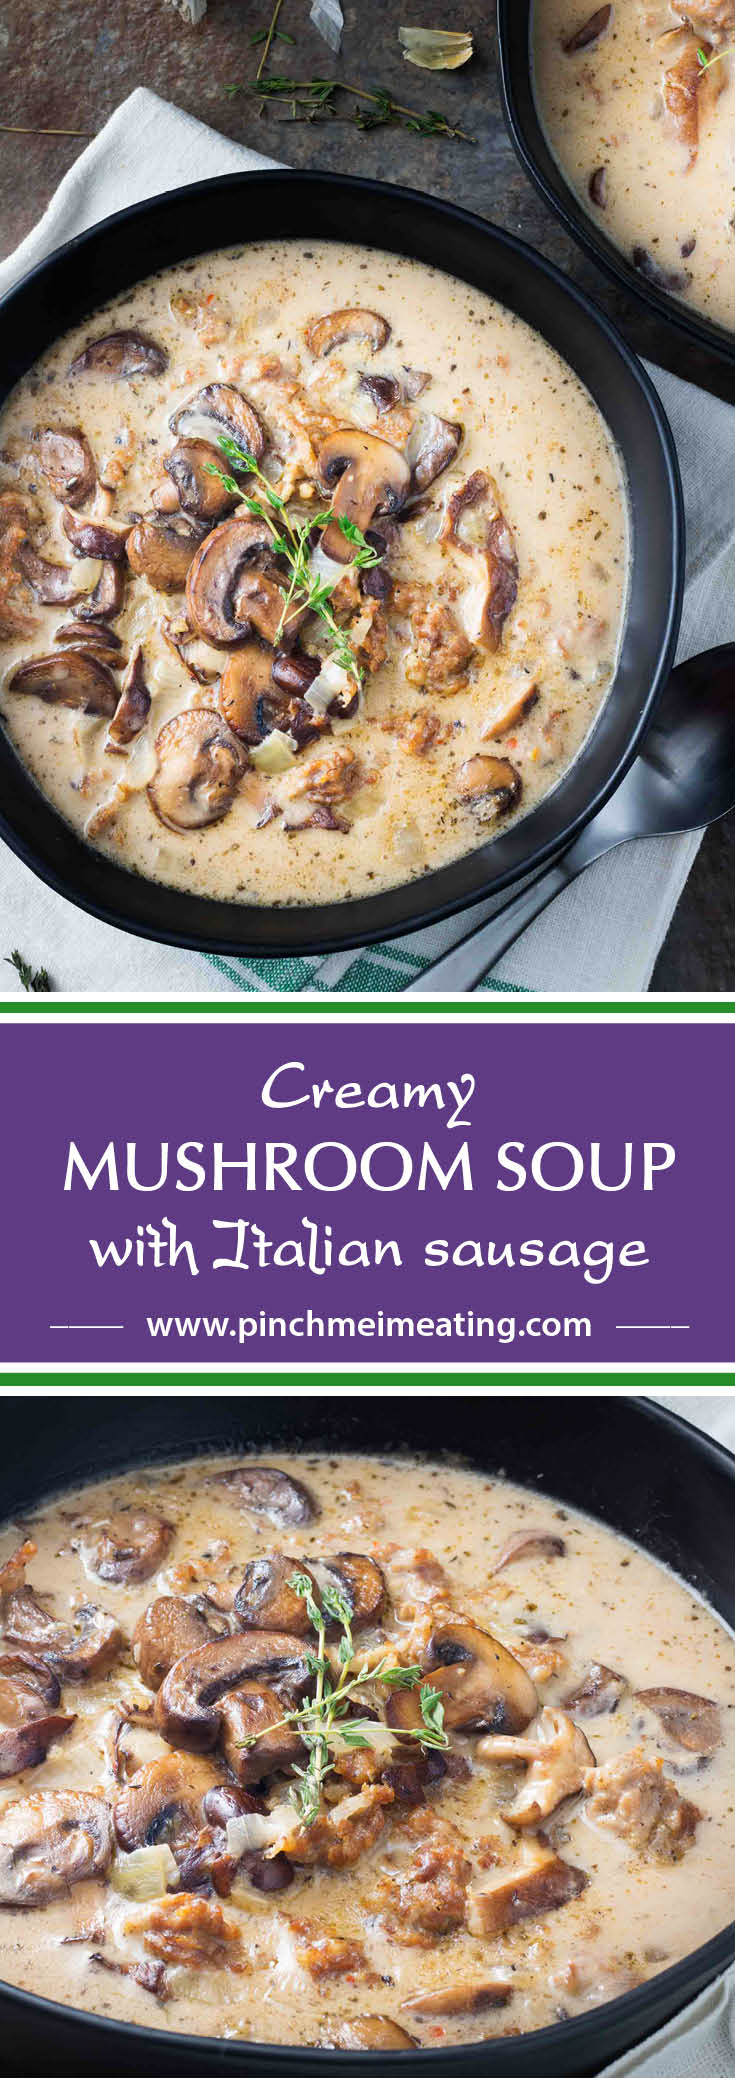 This hearty, creamy mushroom soup with Italian sausage has the added sophistication of white wine and plenty of herbs and is guaranteed to fill you up!